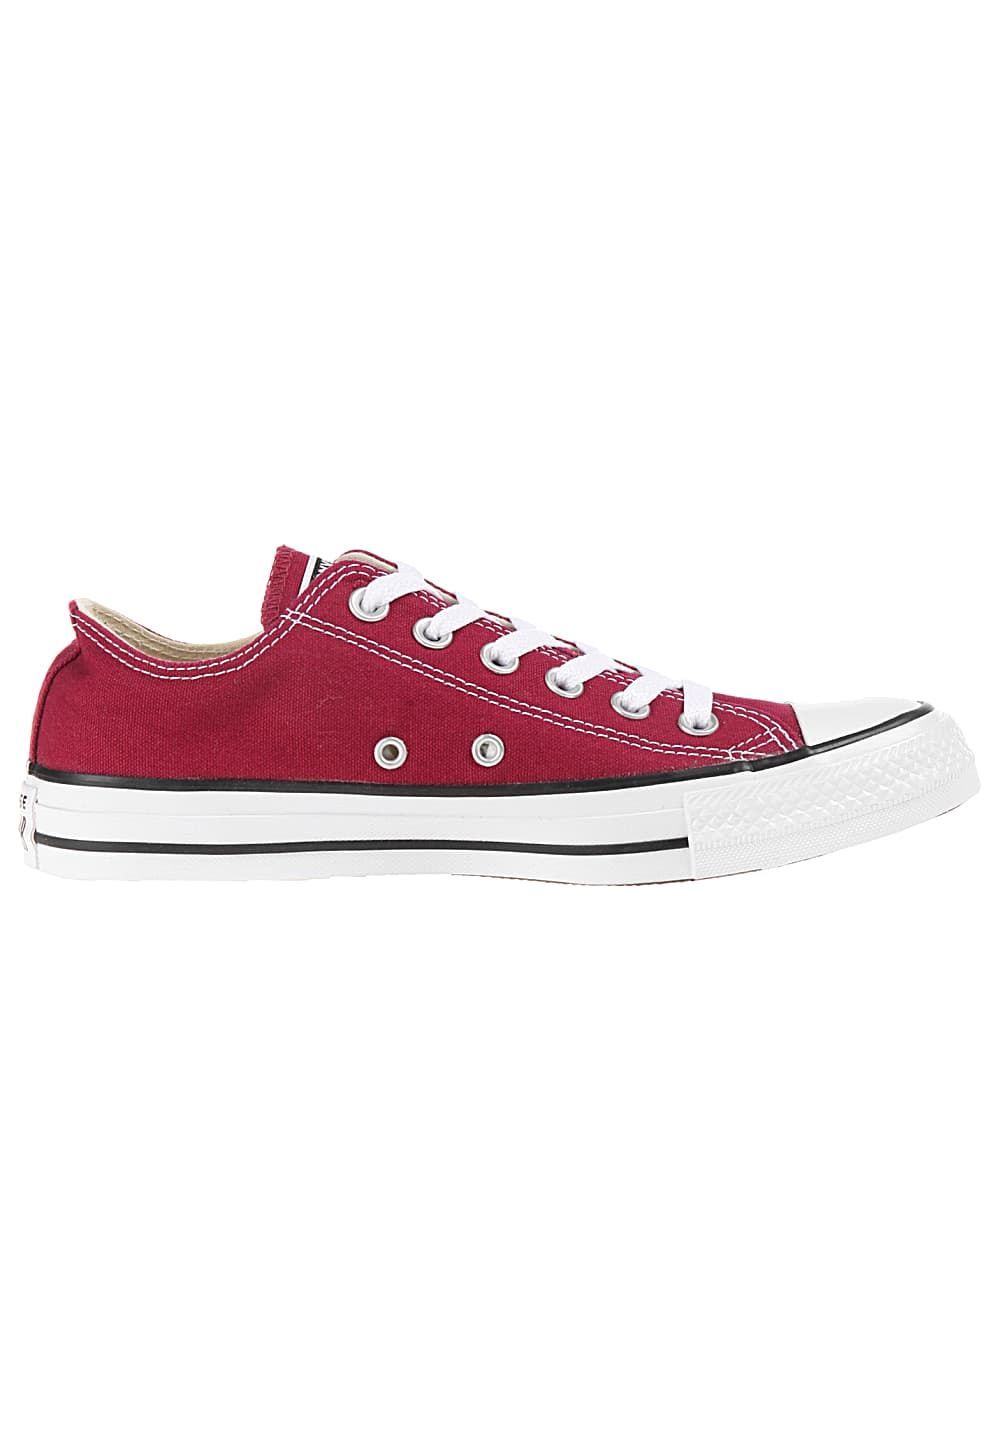 Converse All Star Ox - Sneaker - Rot